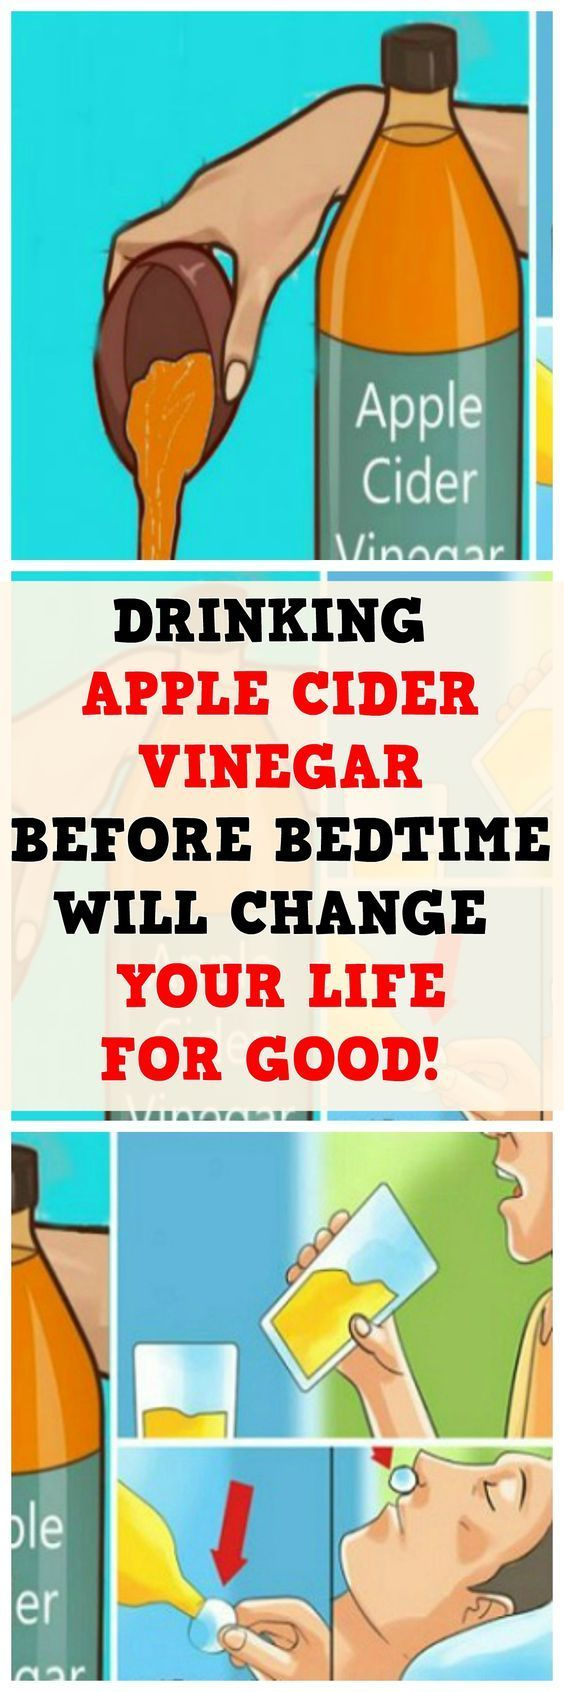 DRINK APPLE CIDER VINEGAR BEFORE BED BECAUSE YOU WILL TREAT THESE HEALTH CONDITIONS!